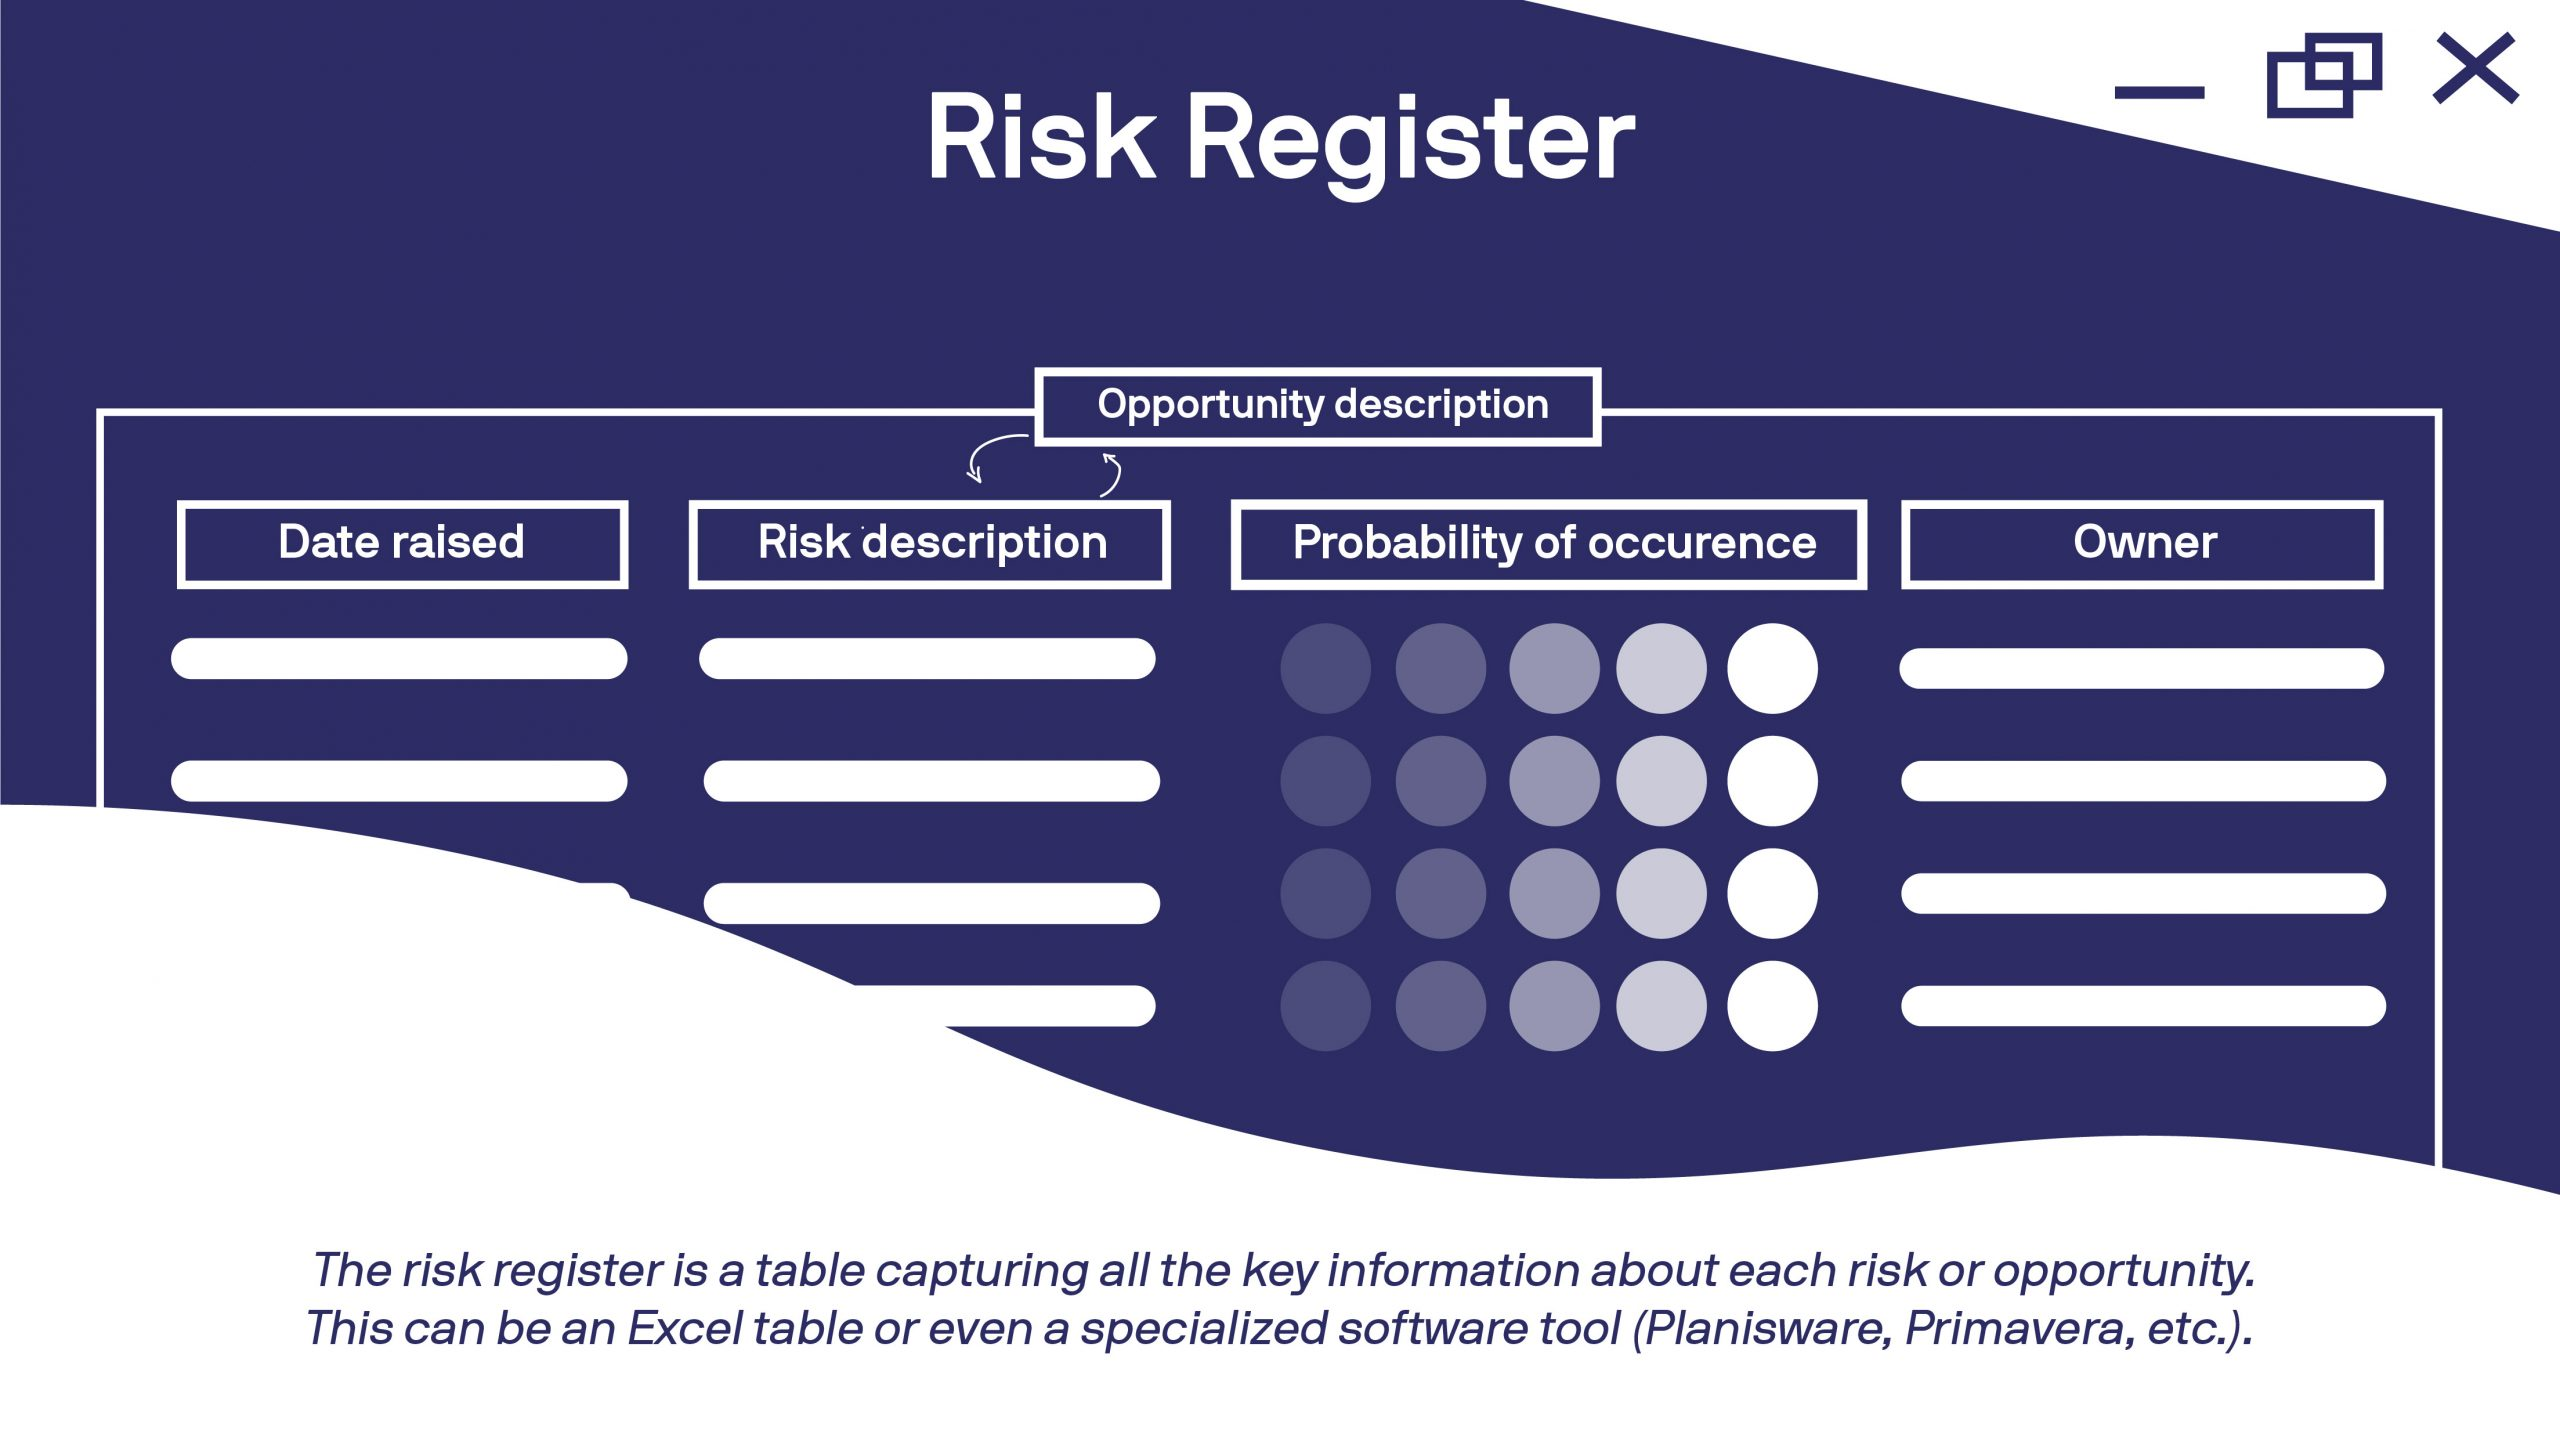 stylized chart with shape representations of risk register listings